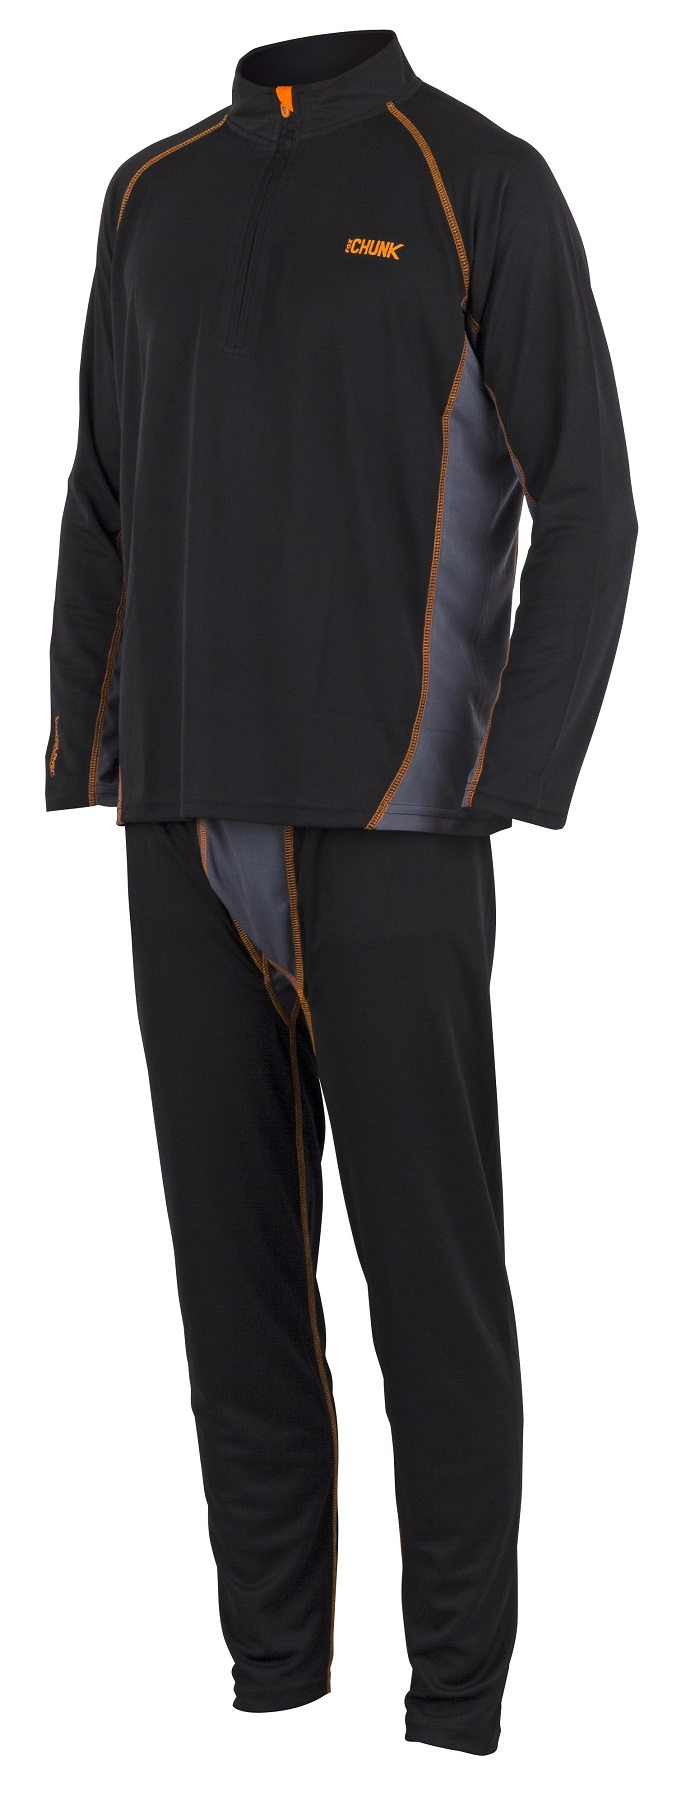 Chunk%20Baselayer%20Set.jpg